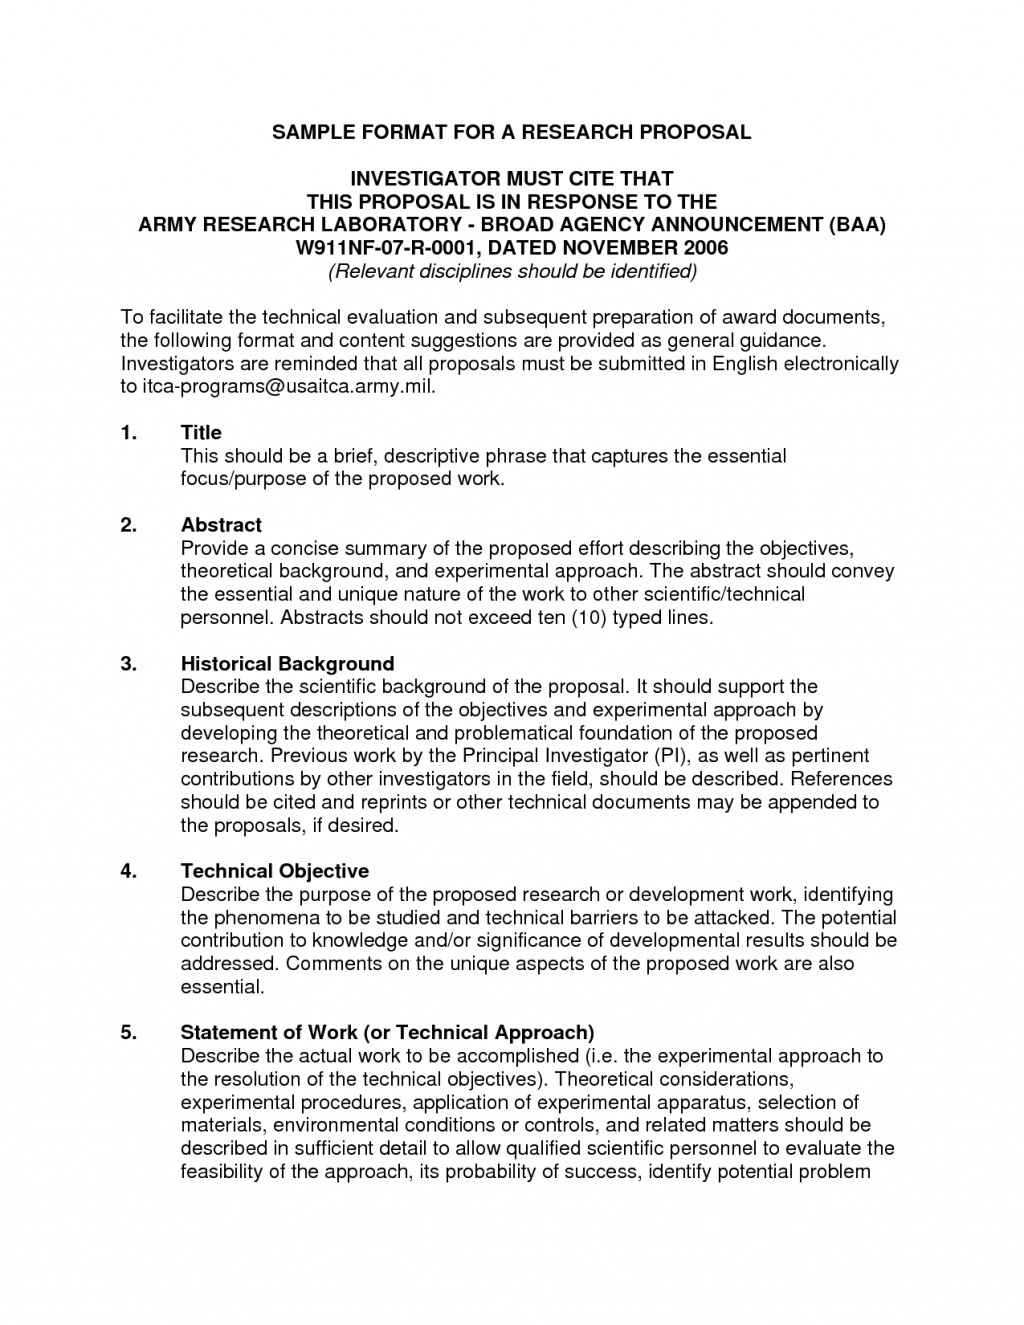 006 Good Topics For Argumentative Research Paper Frightening A Easy Papers Large